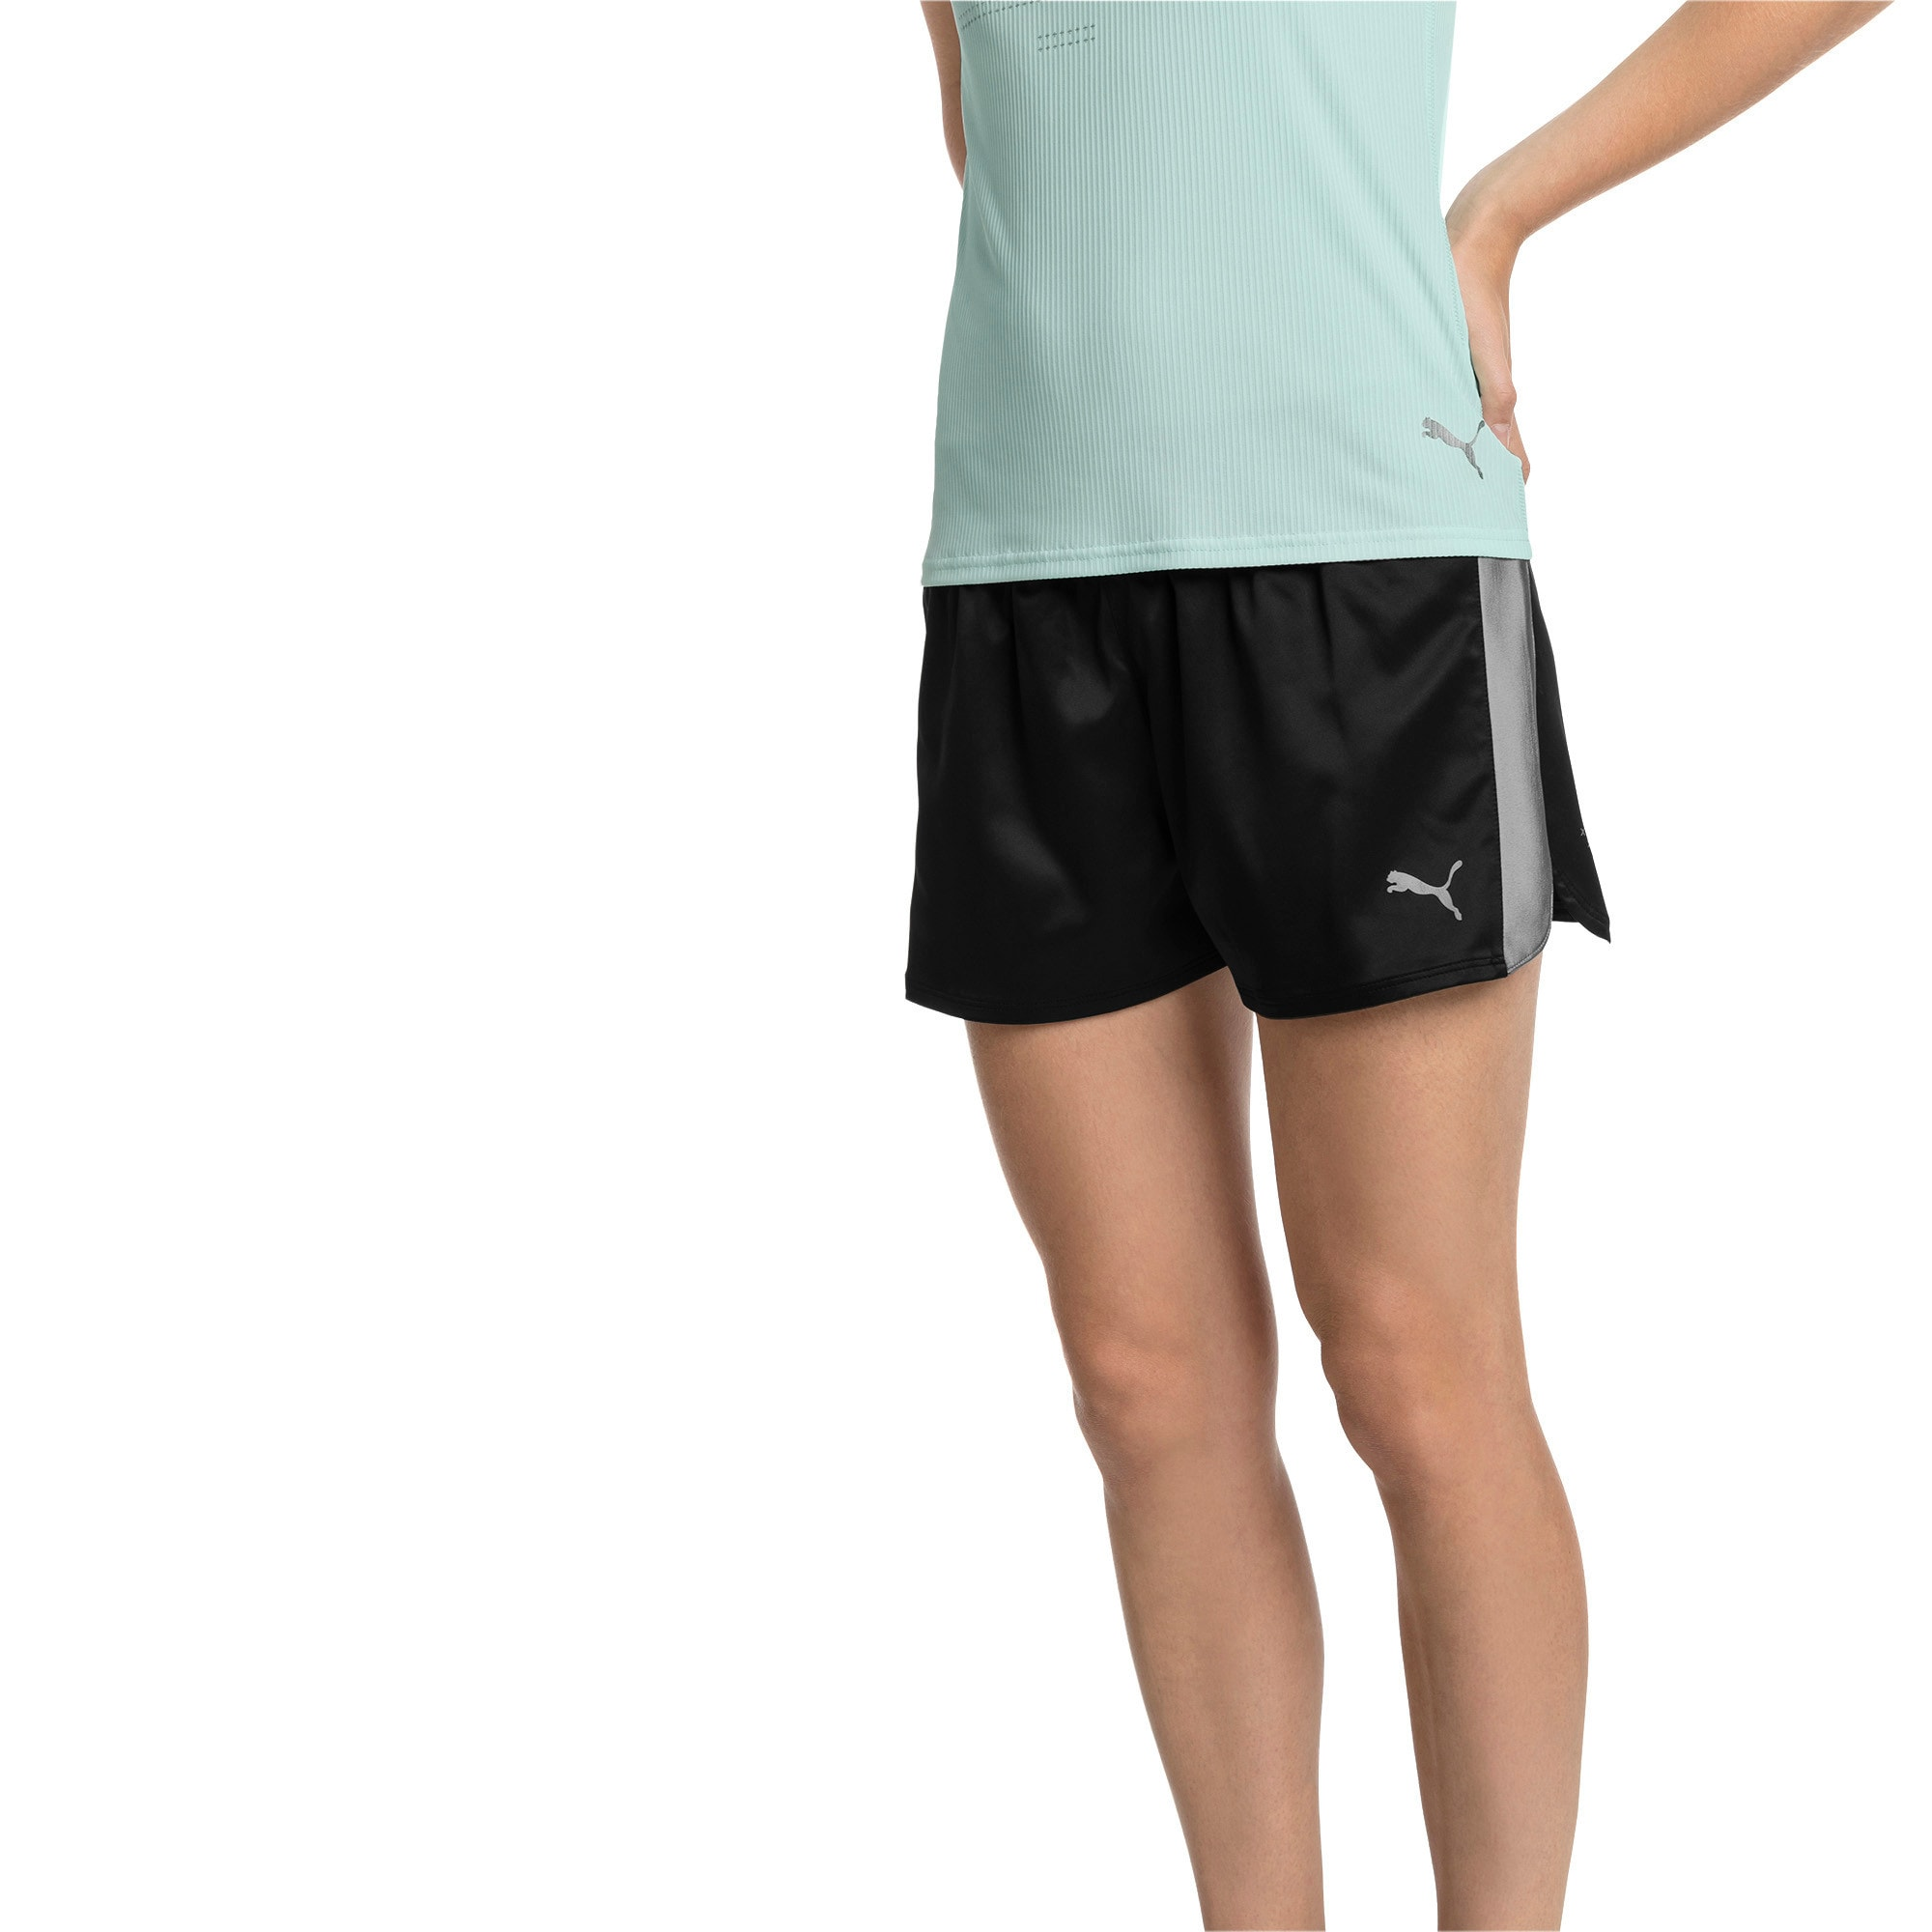 Thumbnail 1 of Blast Woven Women's Shorts, Puma Black, medium